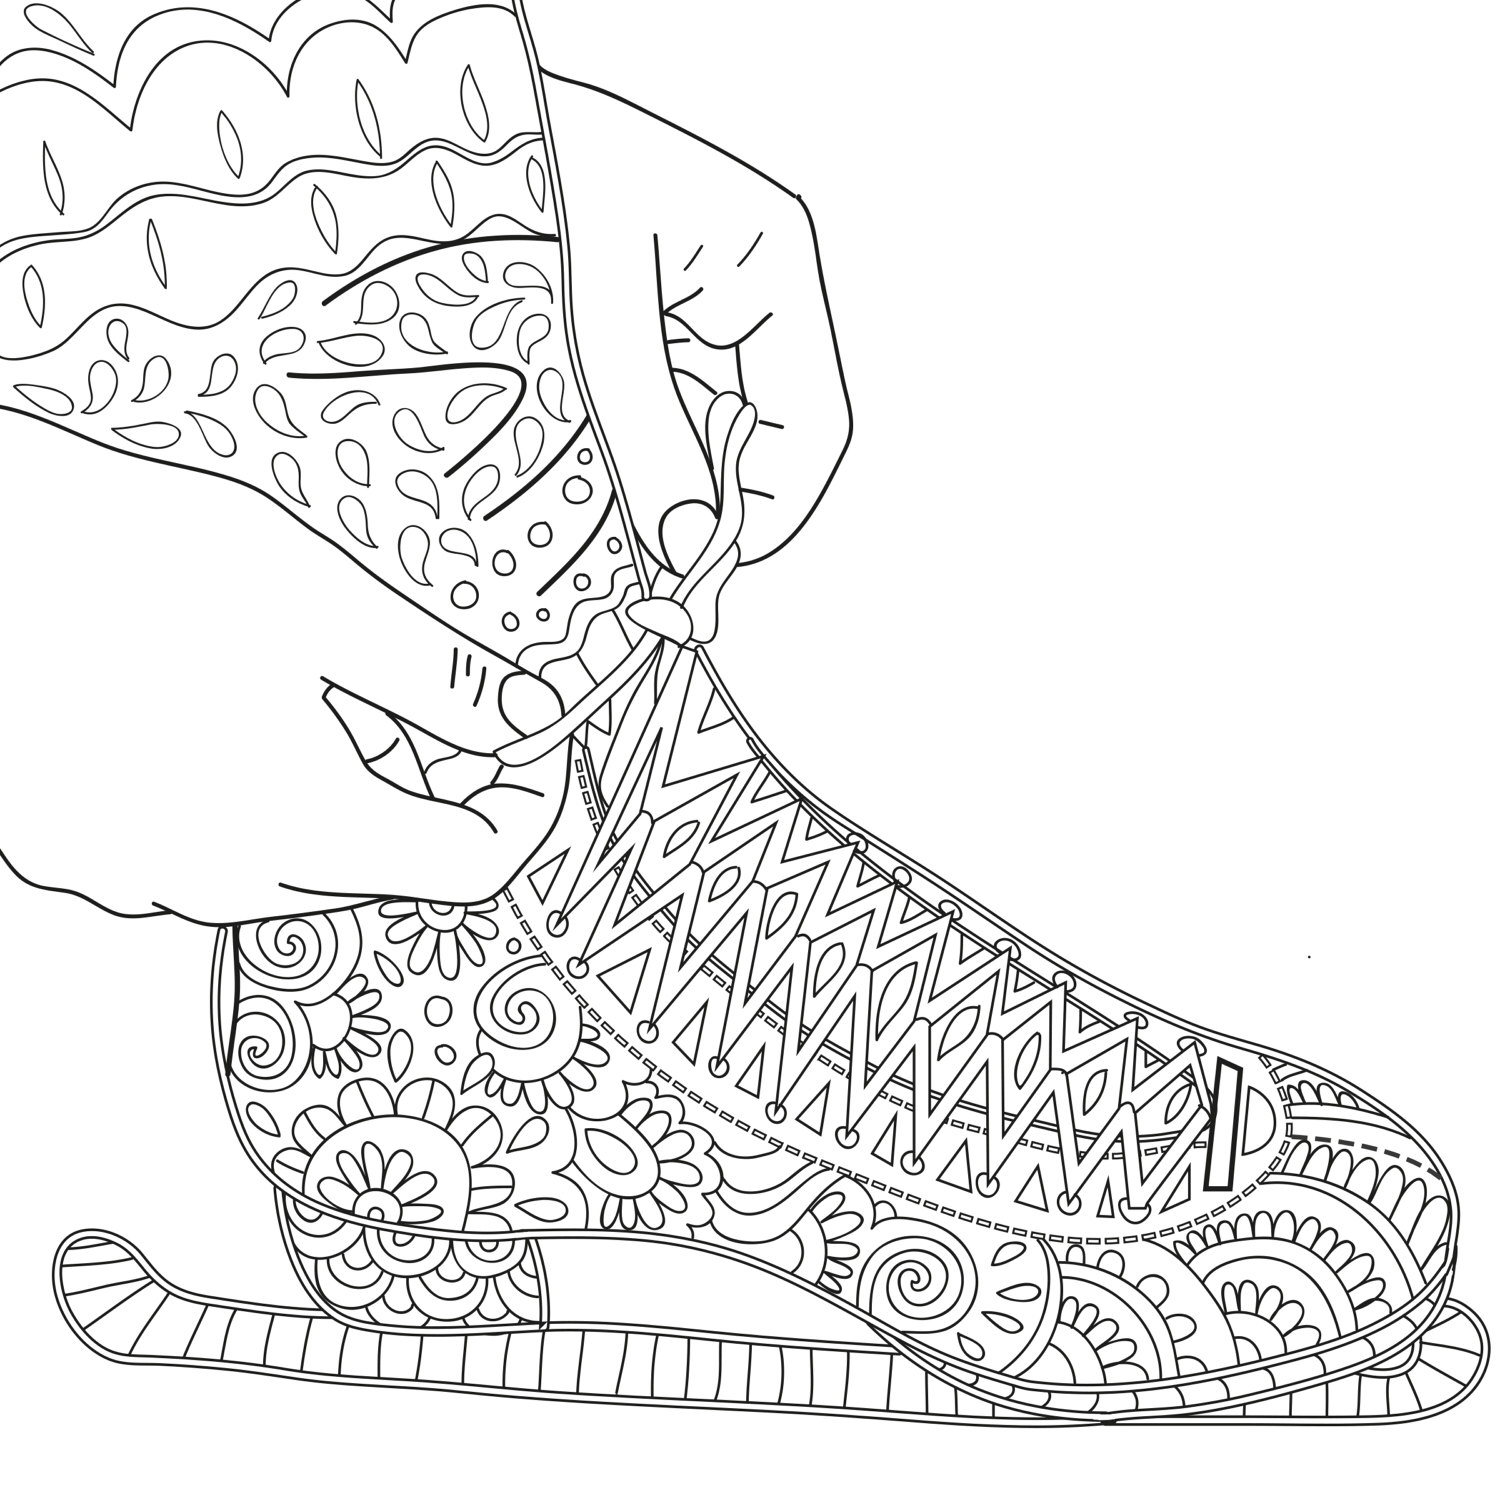 Asteroid Coloring Pages At Getcolorings